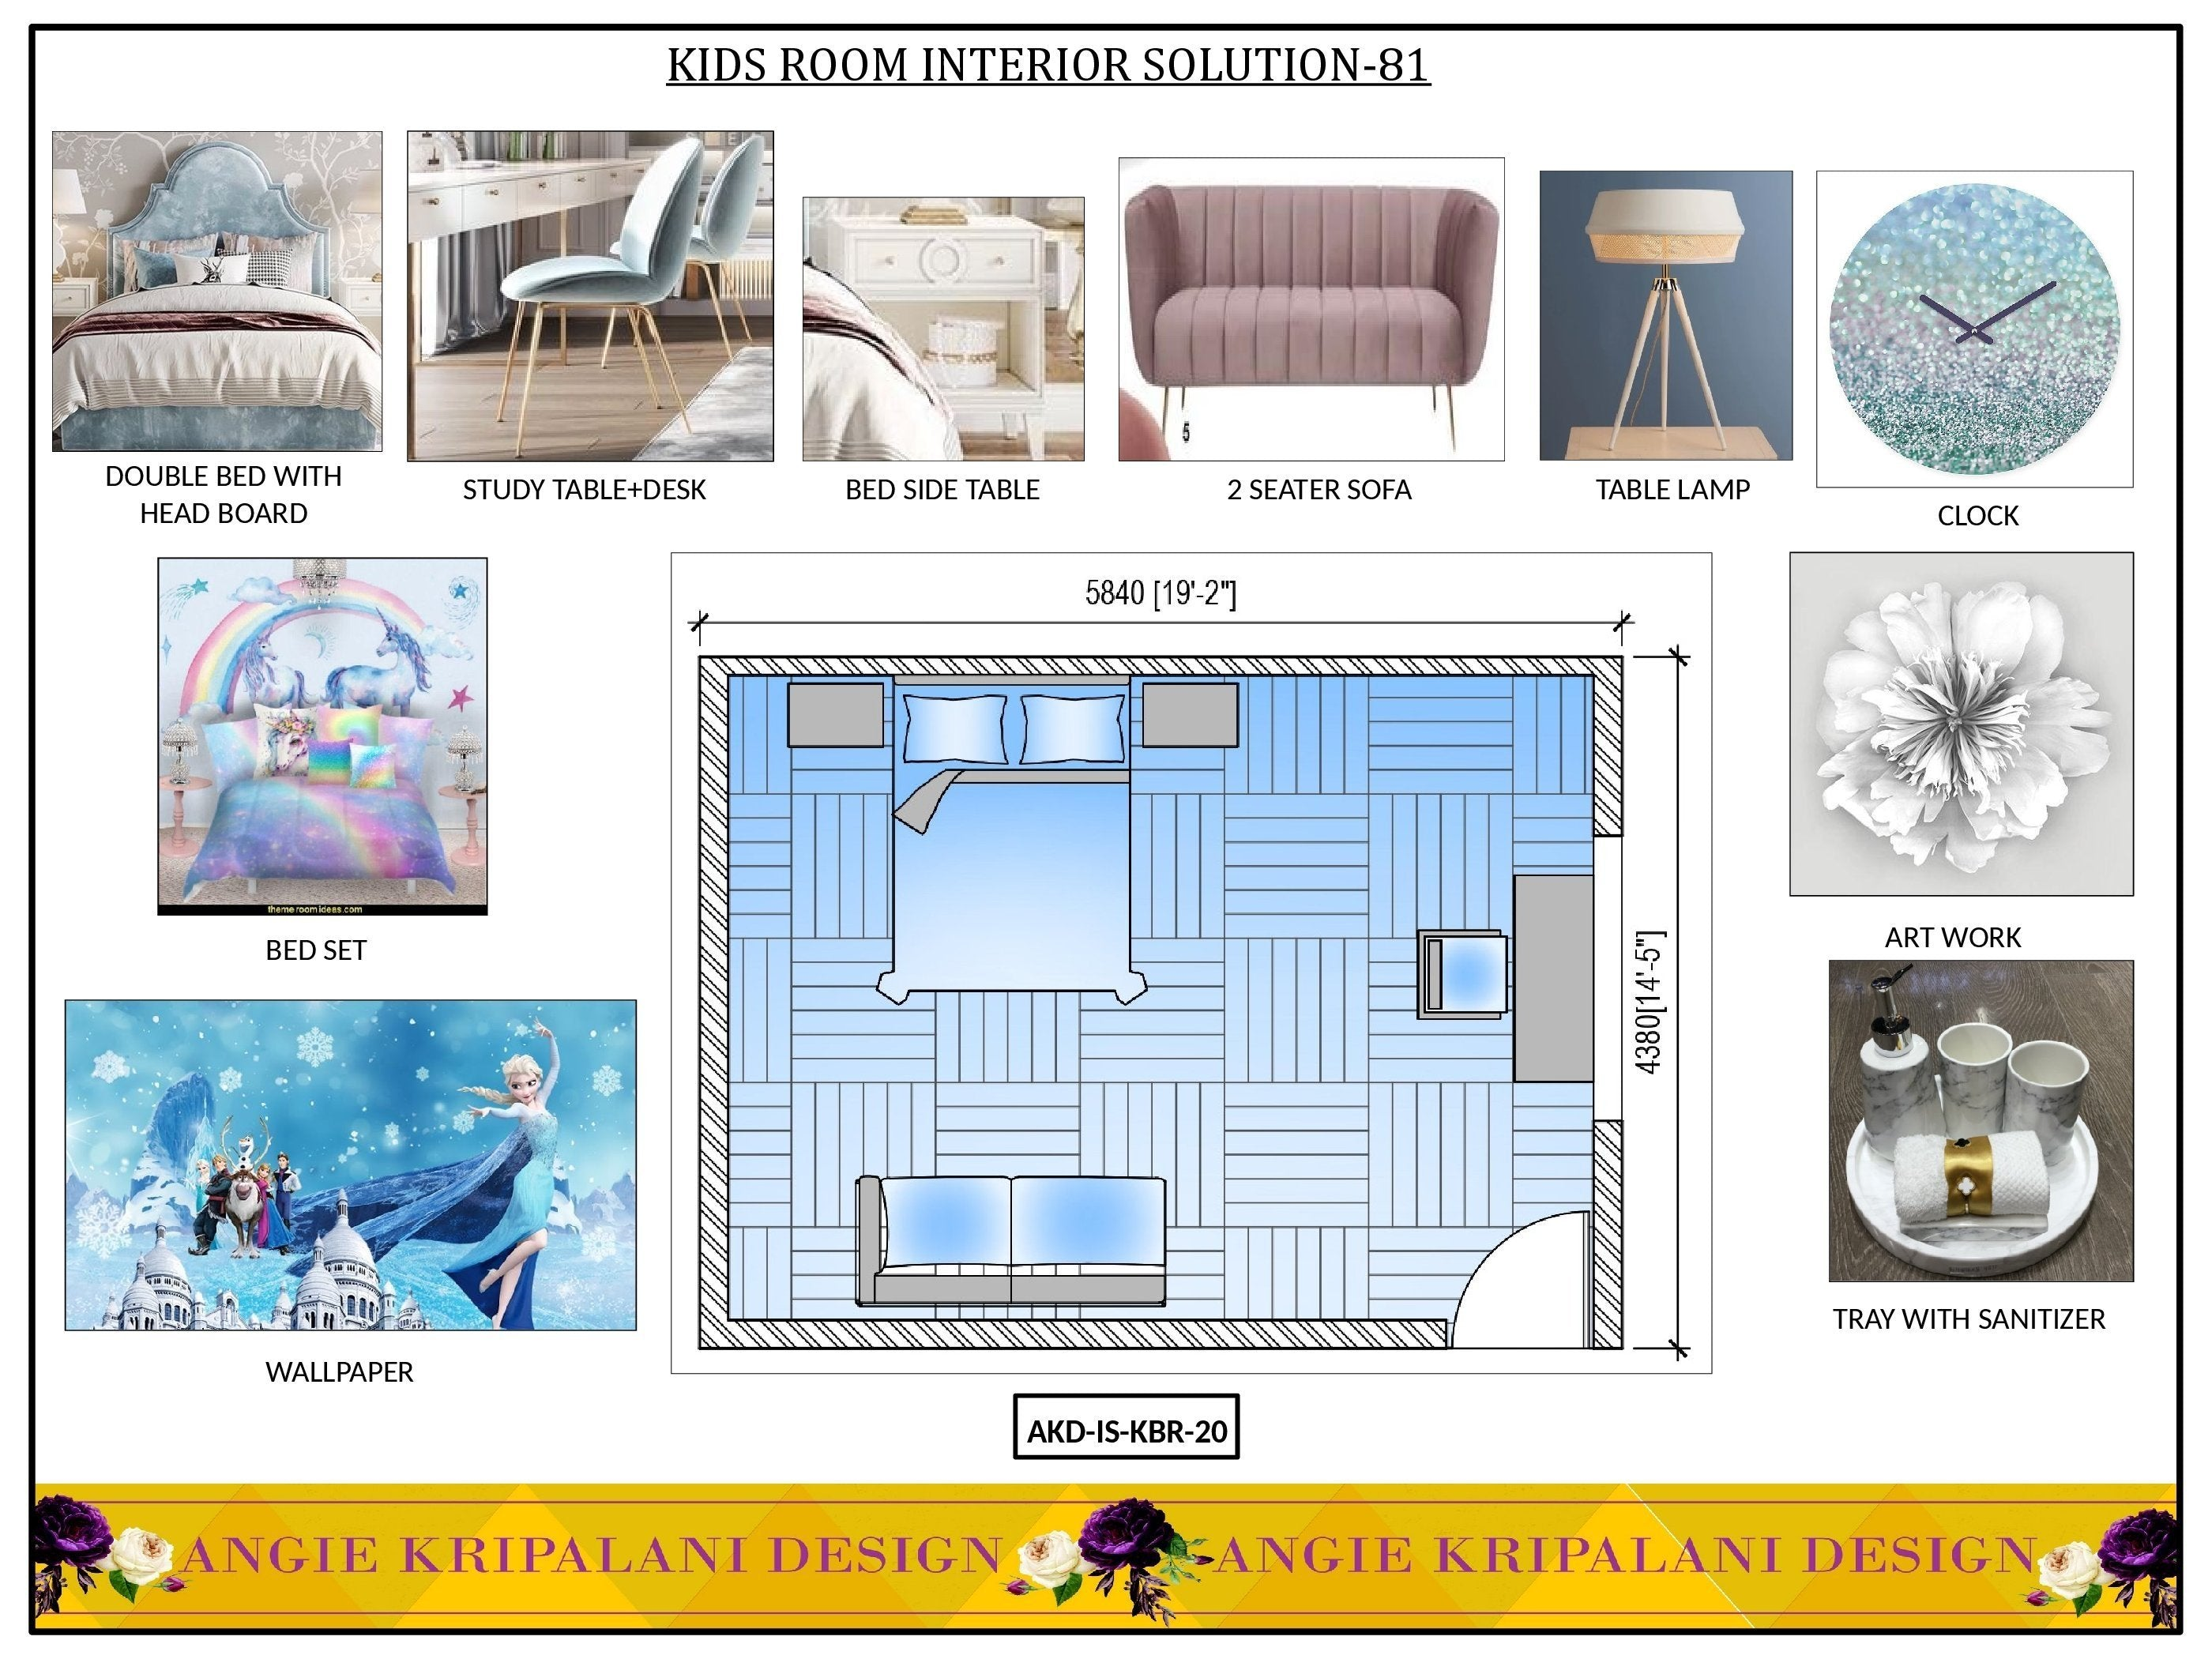 LUXURY KIDS ROOM INTERIOR SOLUTION-81 ANGIE HOMES